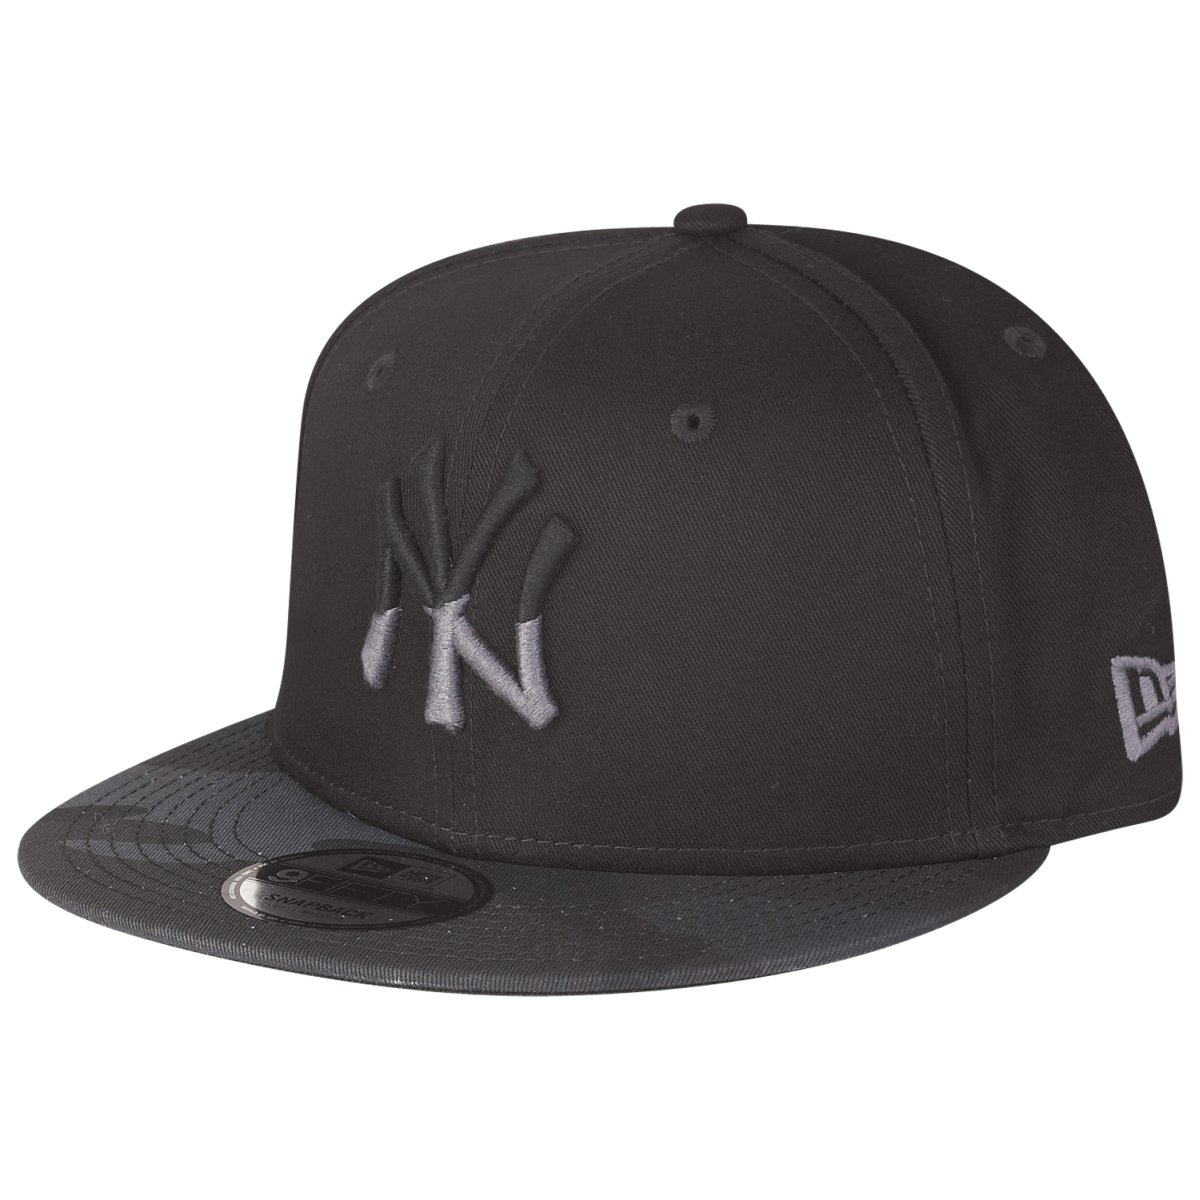 NEW Era 9 FIFTY Snapback engineered CAP-NY Yankees Nero